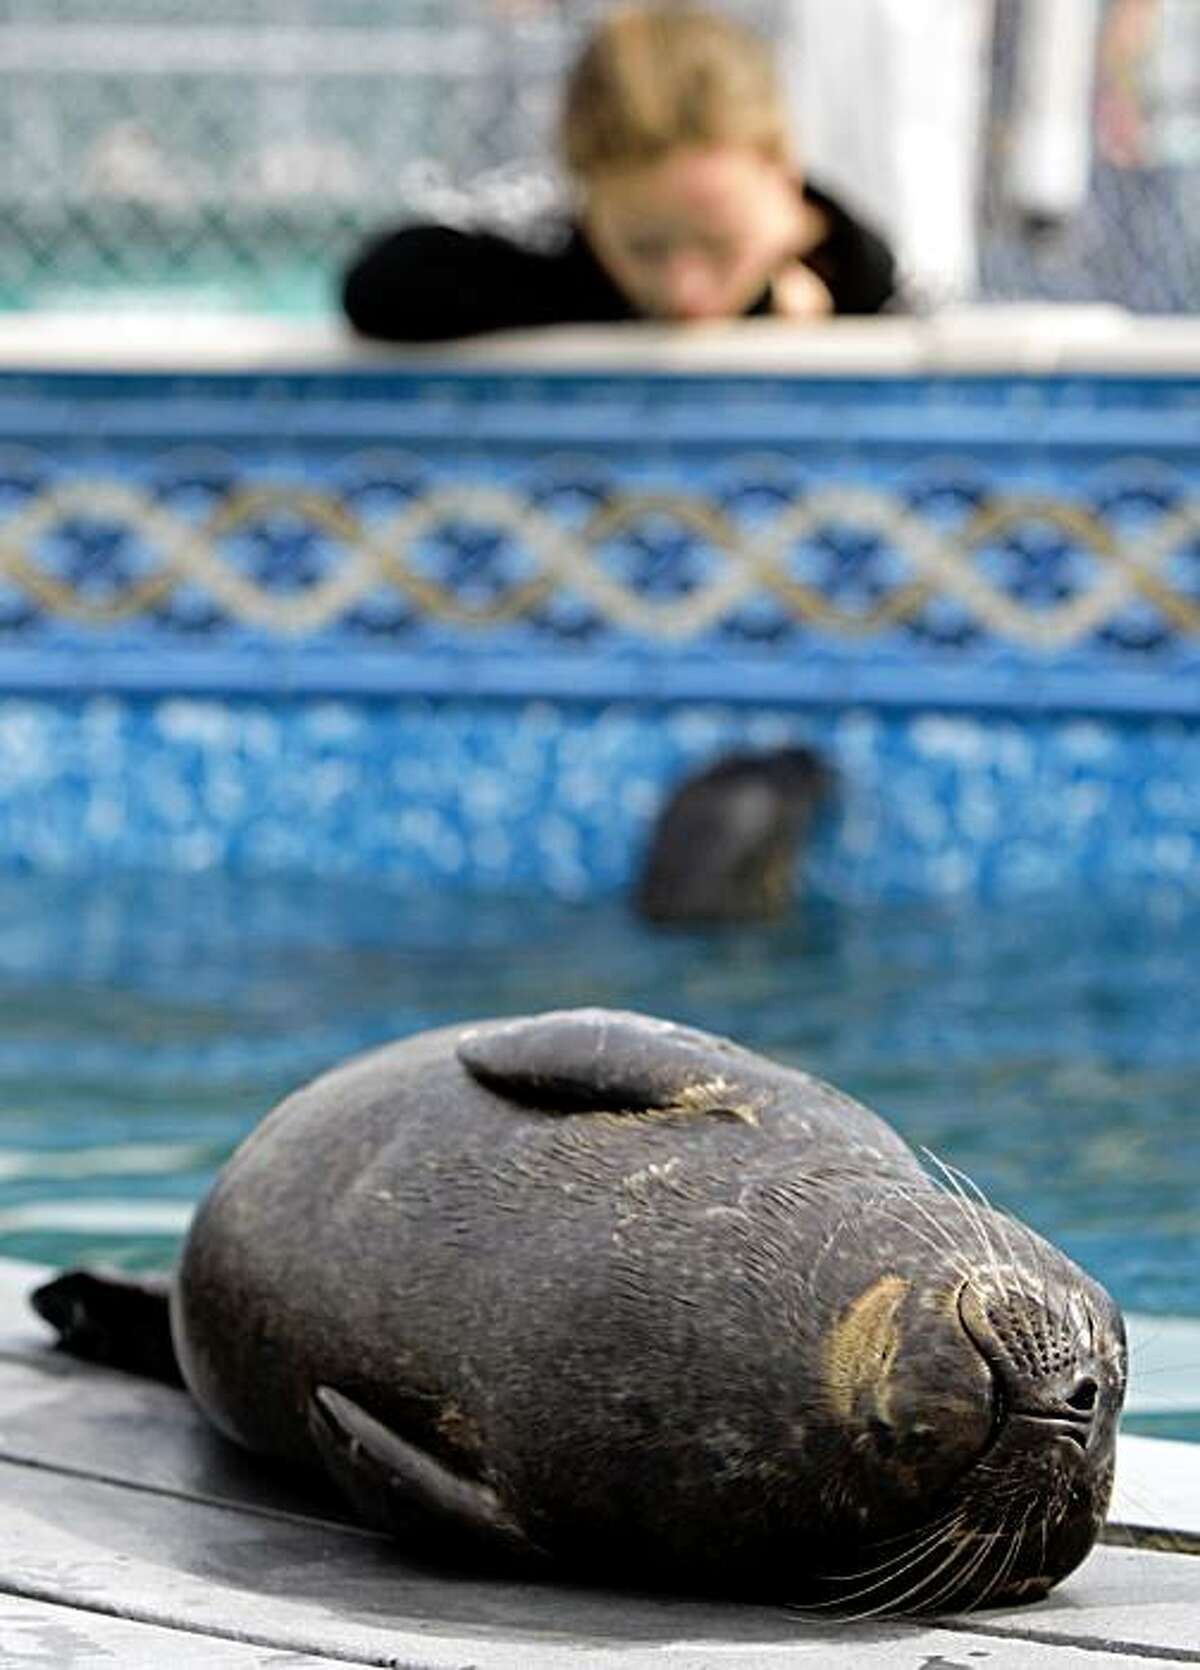 A rescued seal pup sleeps on a platform in a pool during an open house at the Vancouver Aquarium's Marine Mammal Rescue Centre in Vancouver, B.C., on Wednesday, Aug. 26, 2009. The center has cared for more than 2,000 sick, injured, abandoned and orphaned marine mammals since the program began.